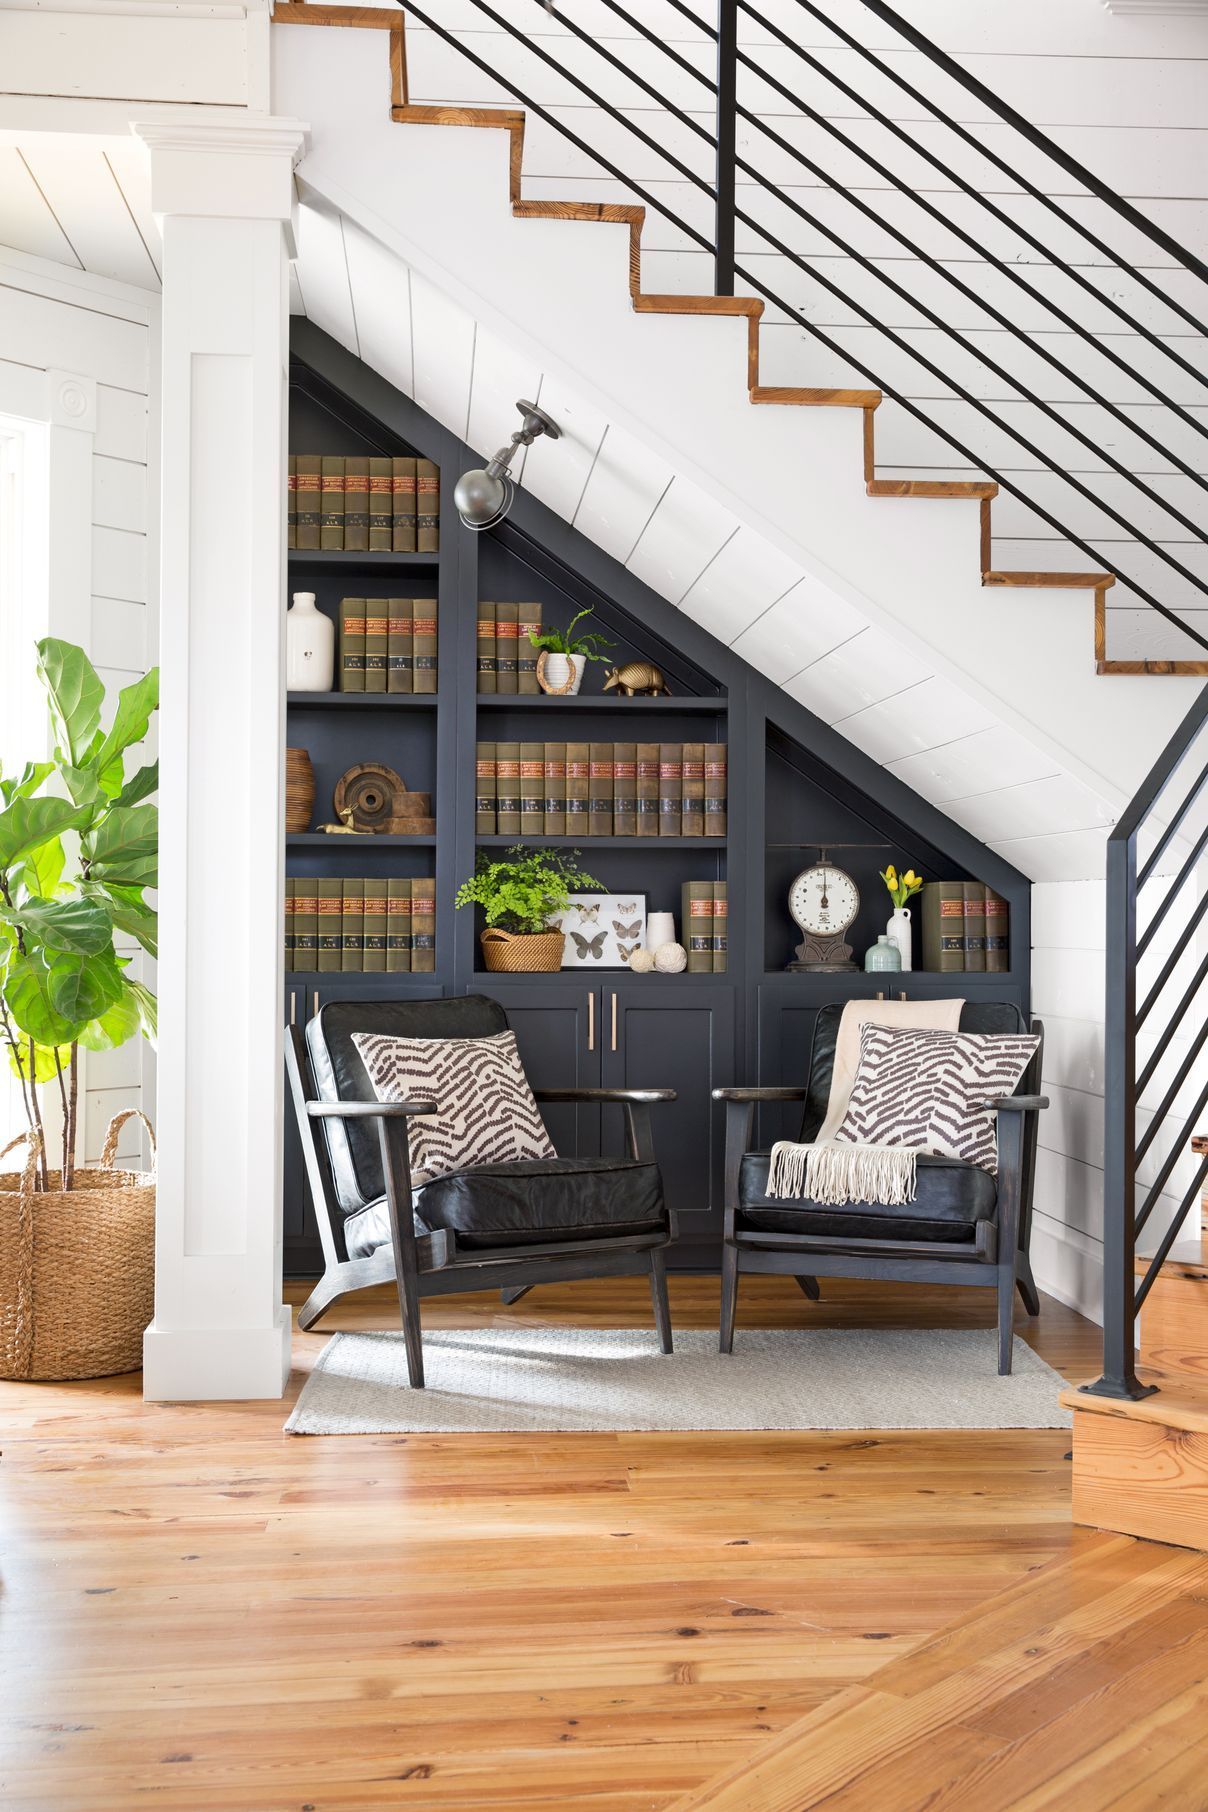 Take a Tour of Chip and Joanna Gaines' Magnolia House B&B ...